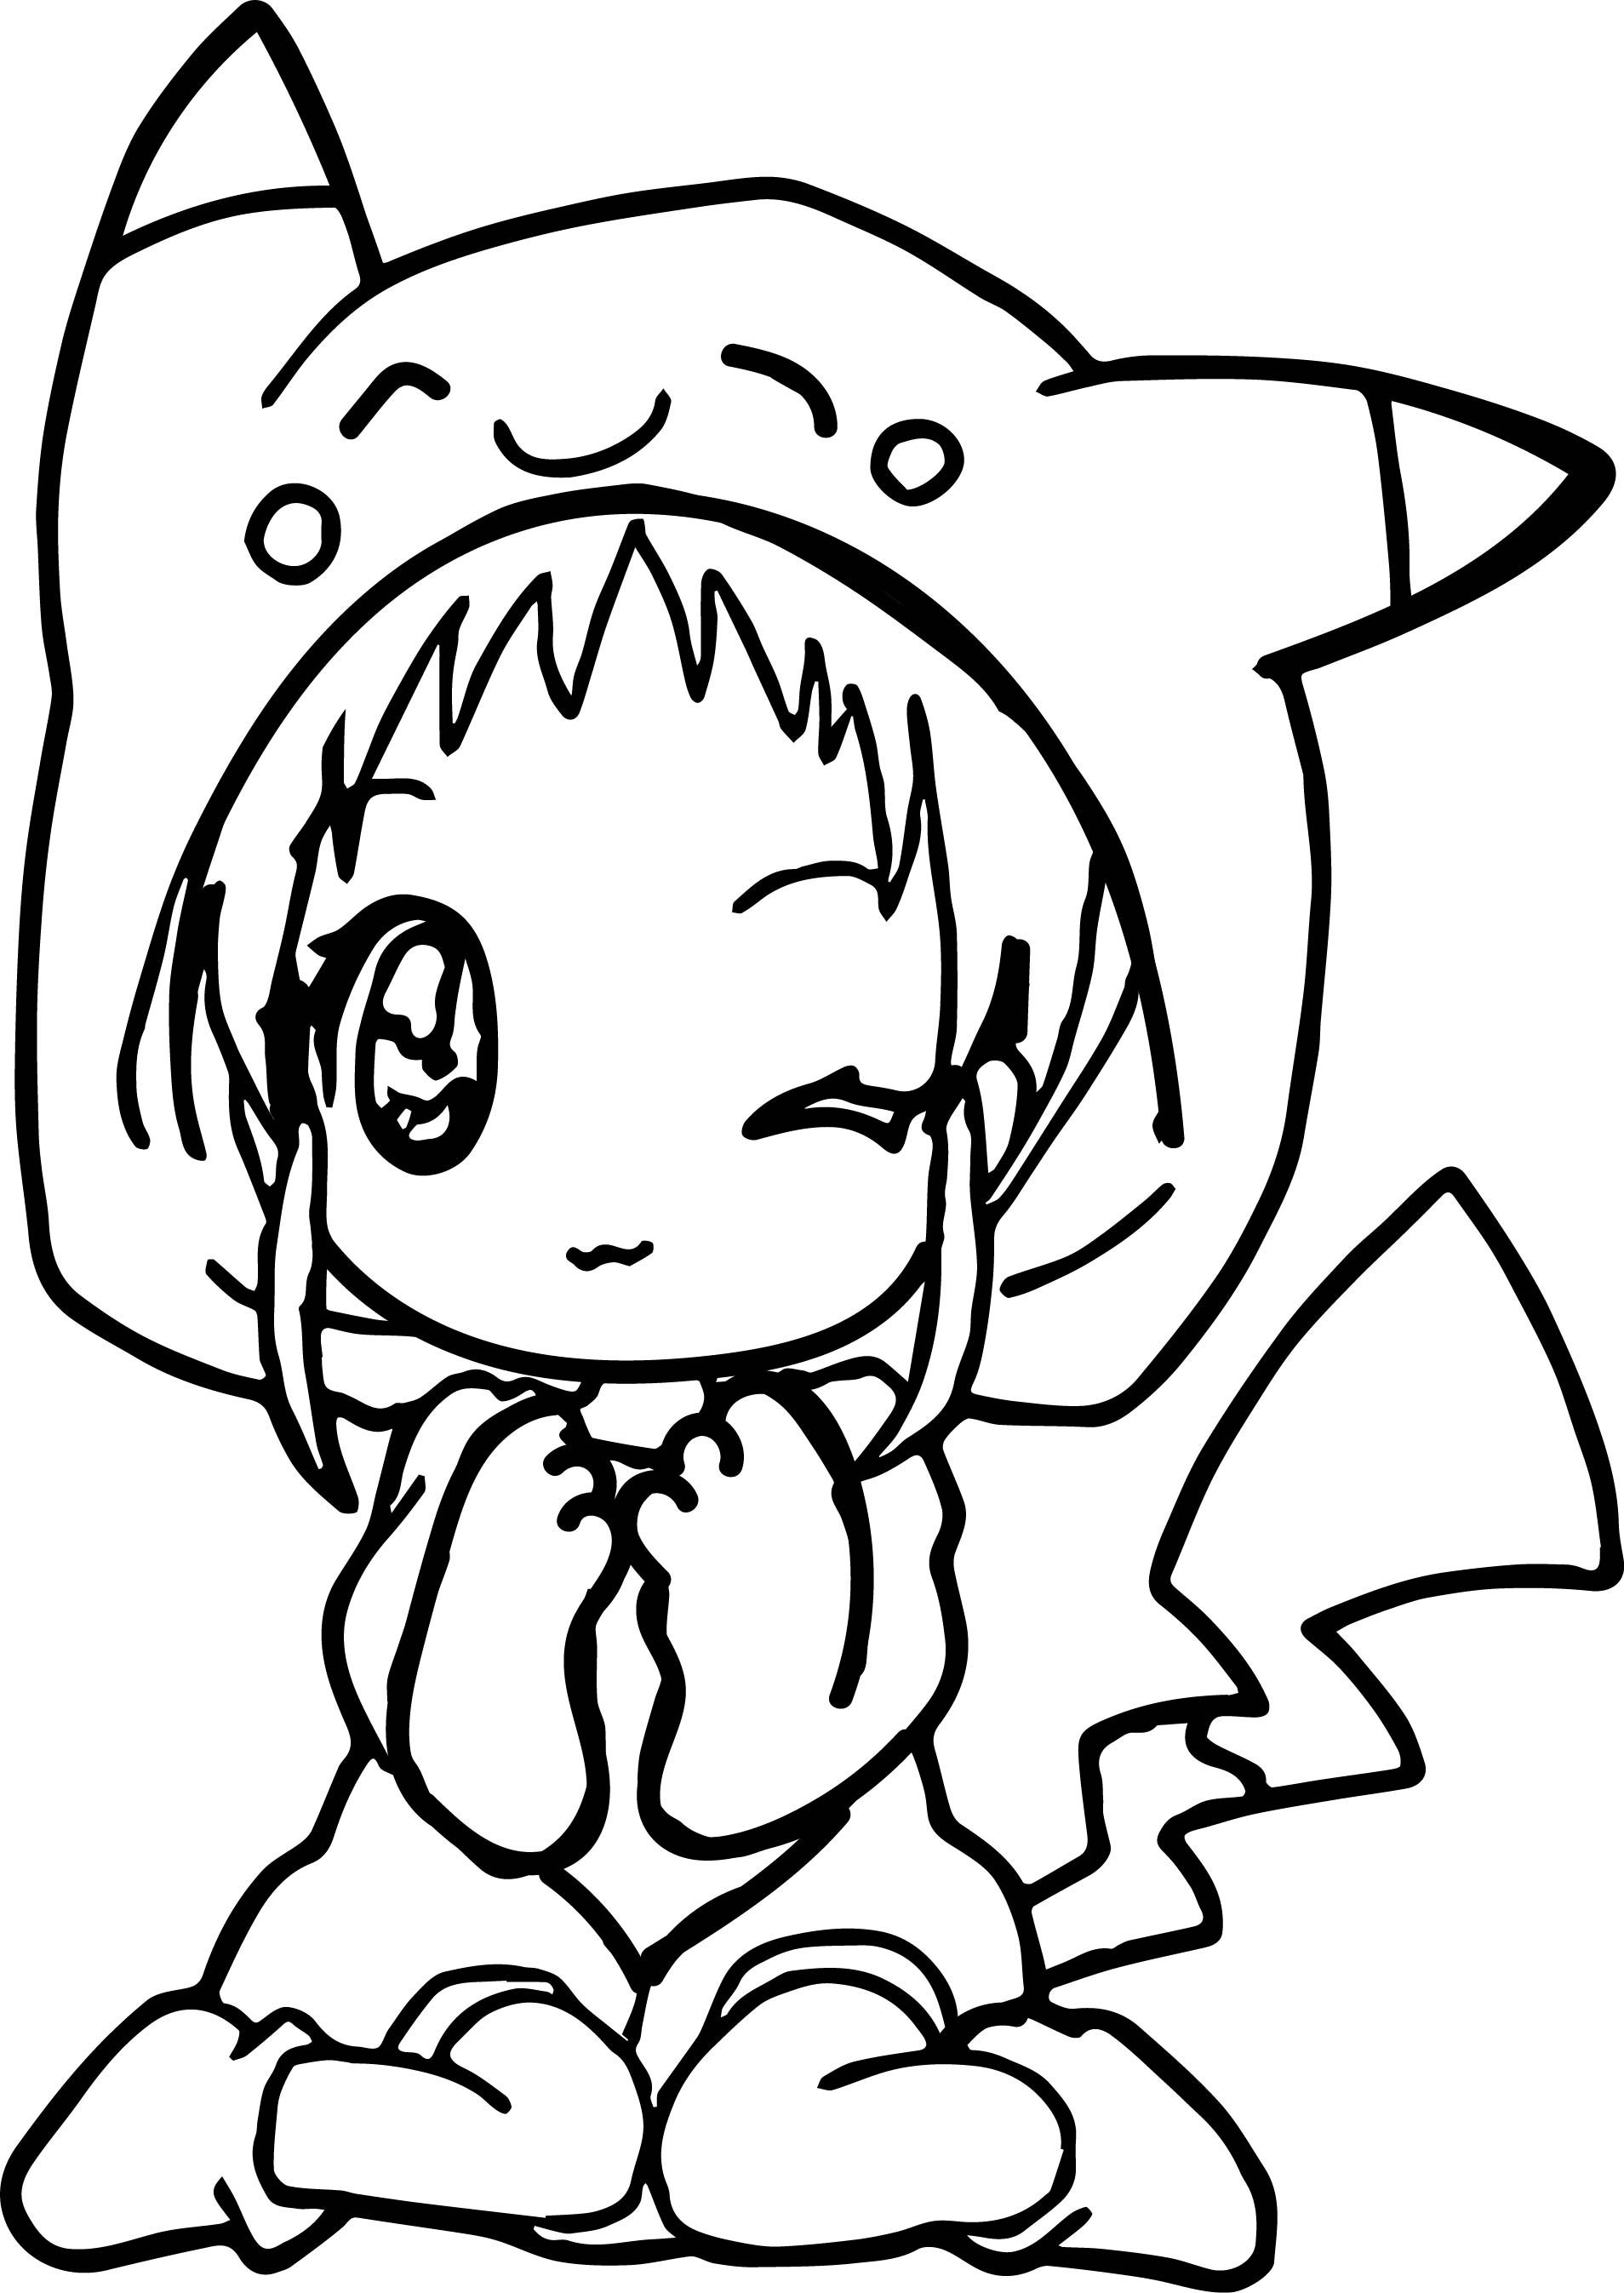 Dragon Coloring Pages For Girls  Anime Dragon Coloring Pages at GetColorings